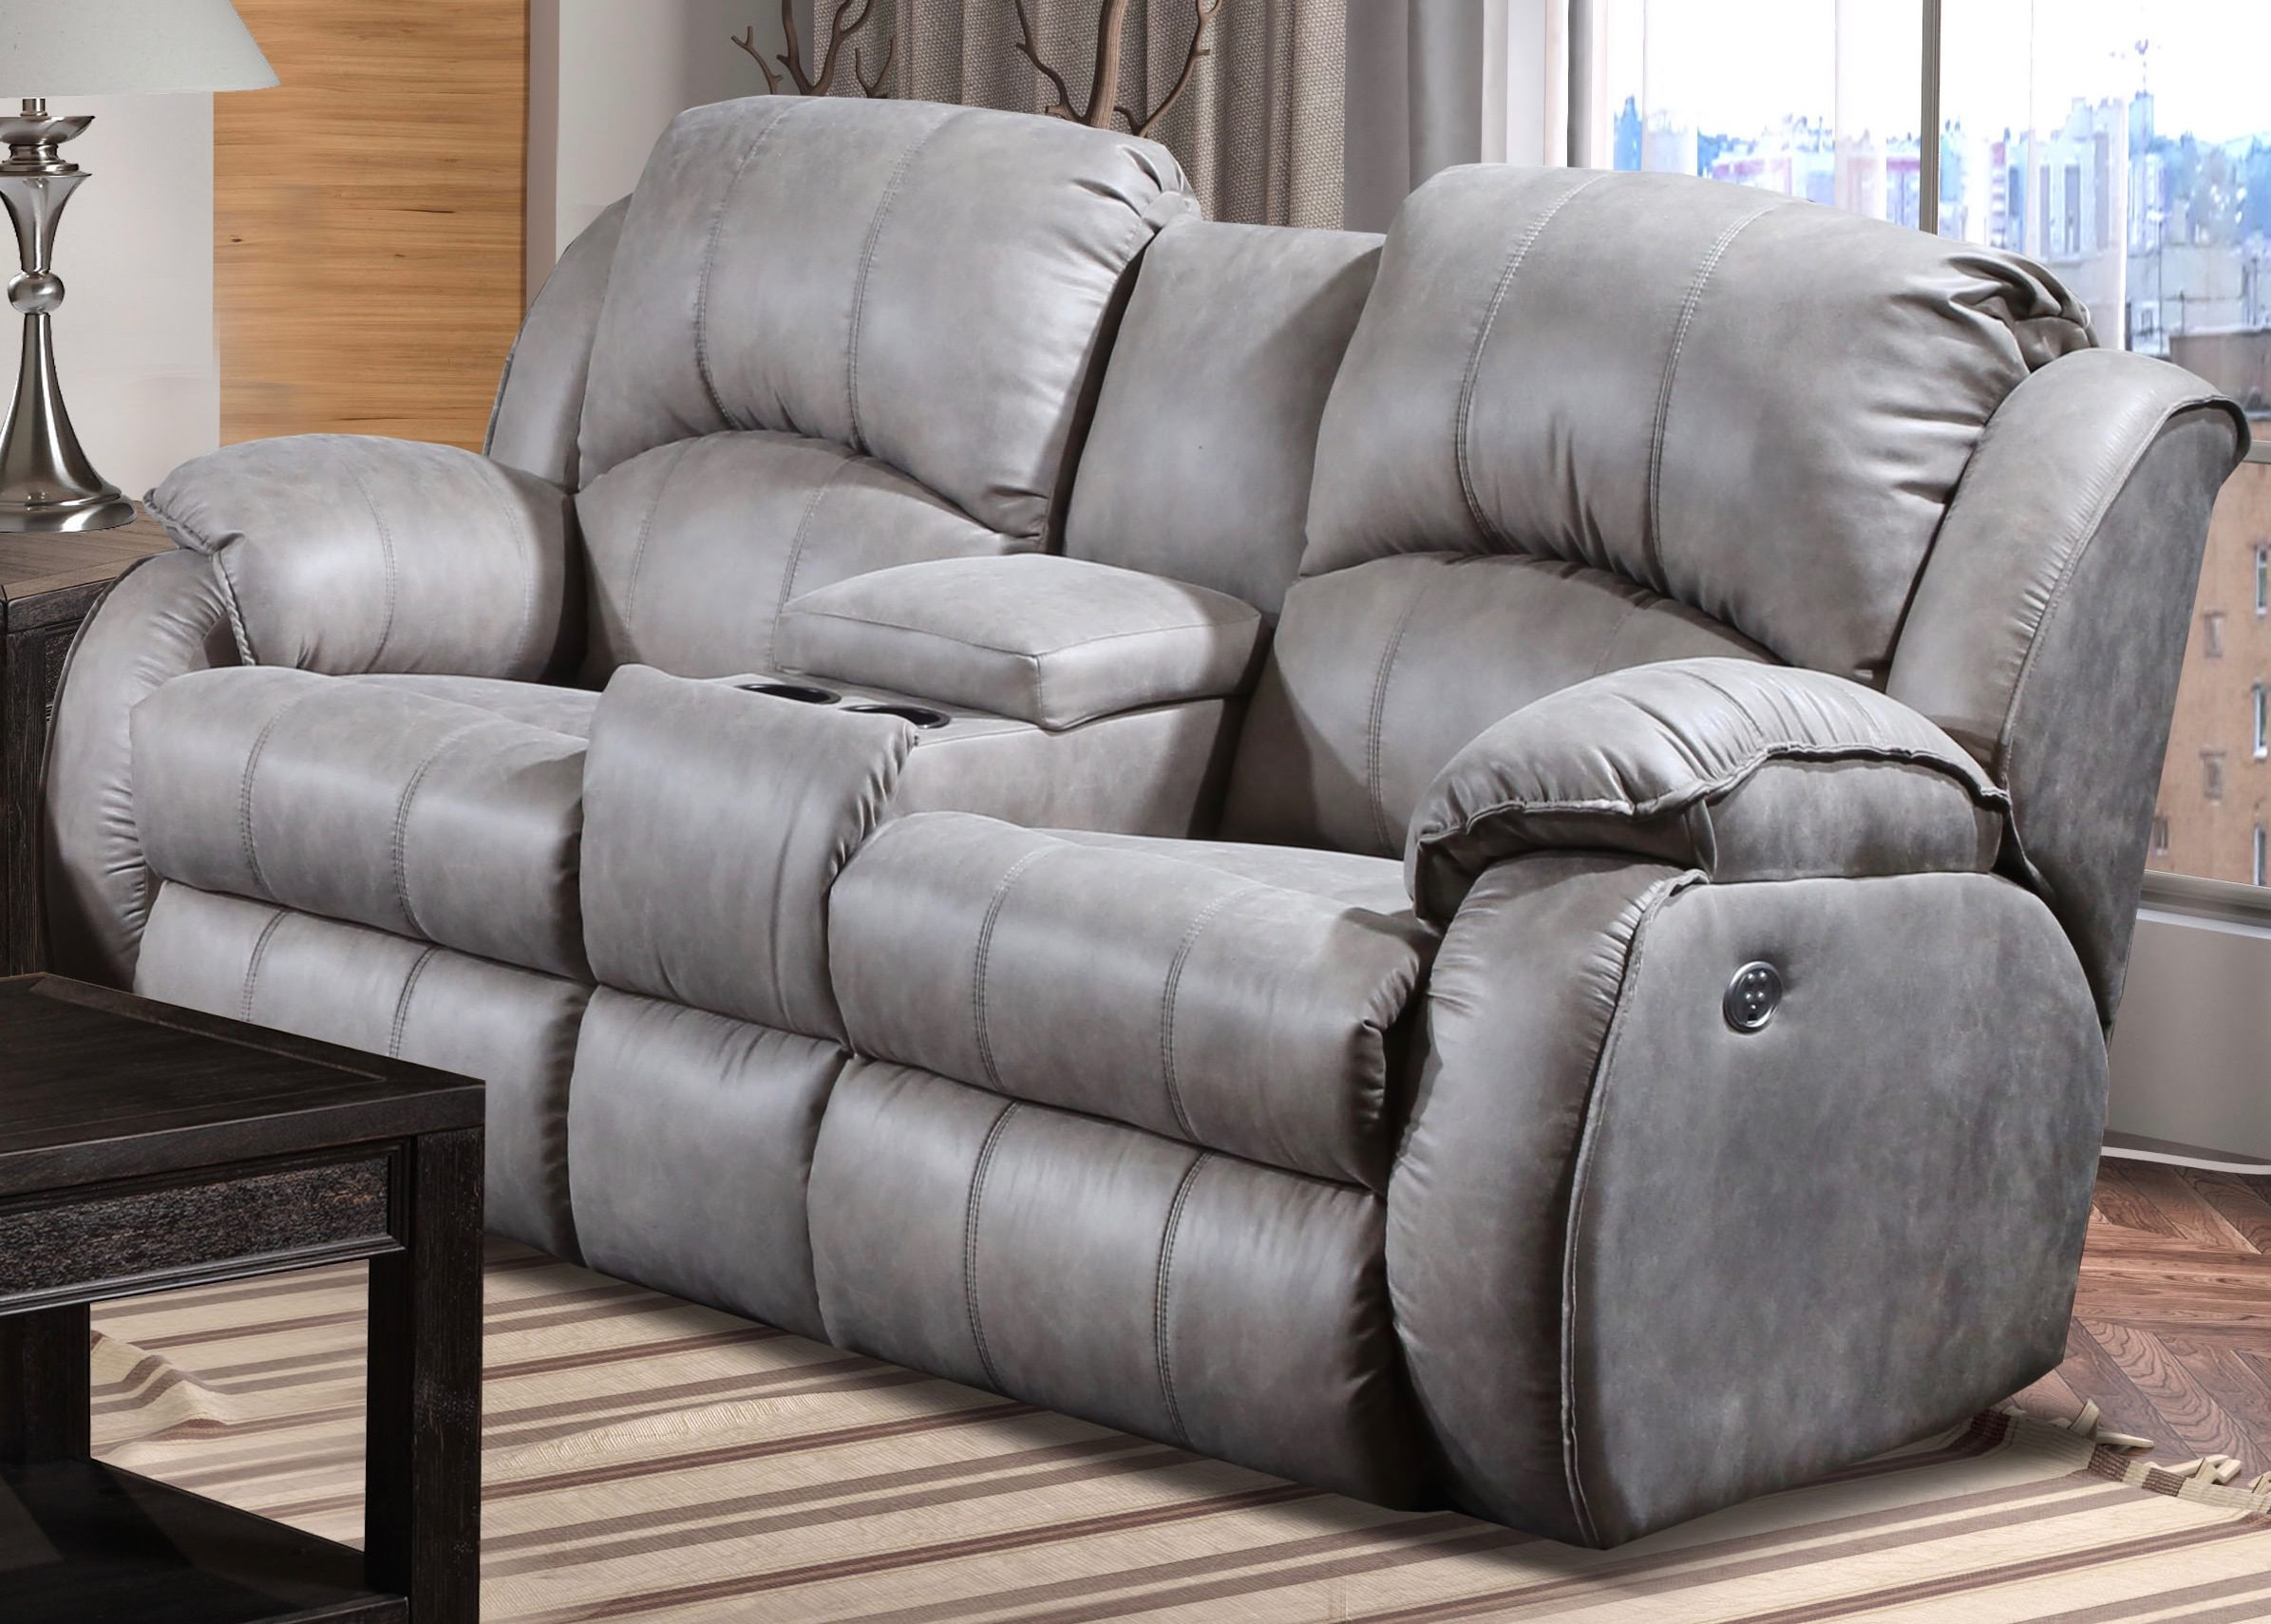 Fine Cagney Power Headrest Reclining Sofa Collection Sofas And Download Free Architecture Designs Scobabritishbridgeorg